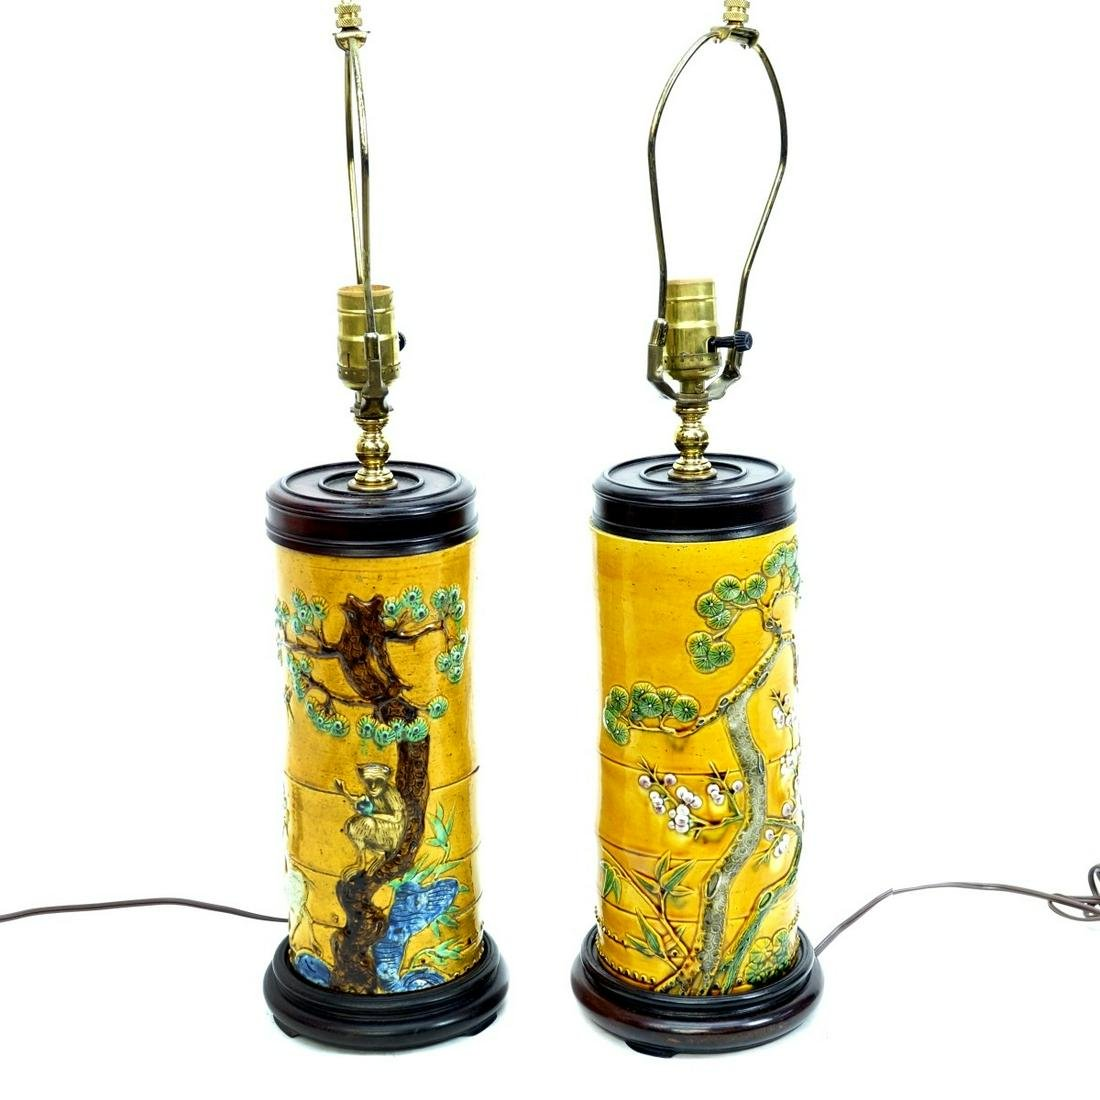 Pair of Modern Chinese Porcelain Lamps